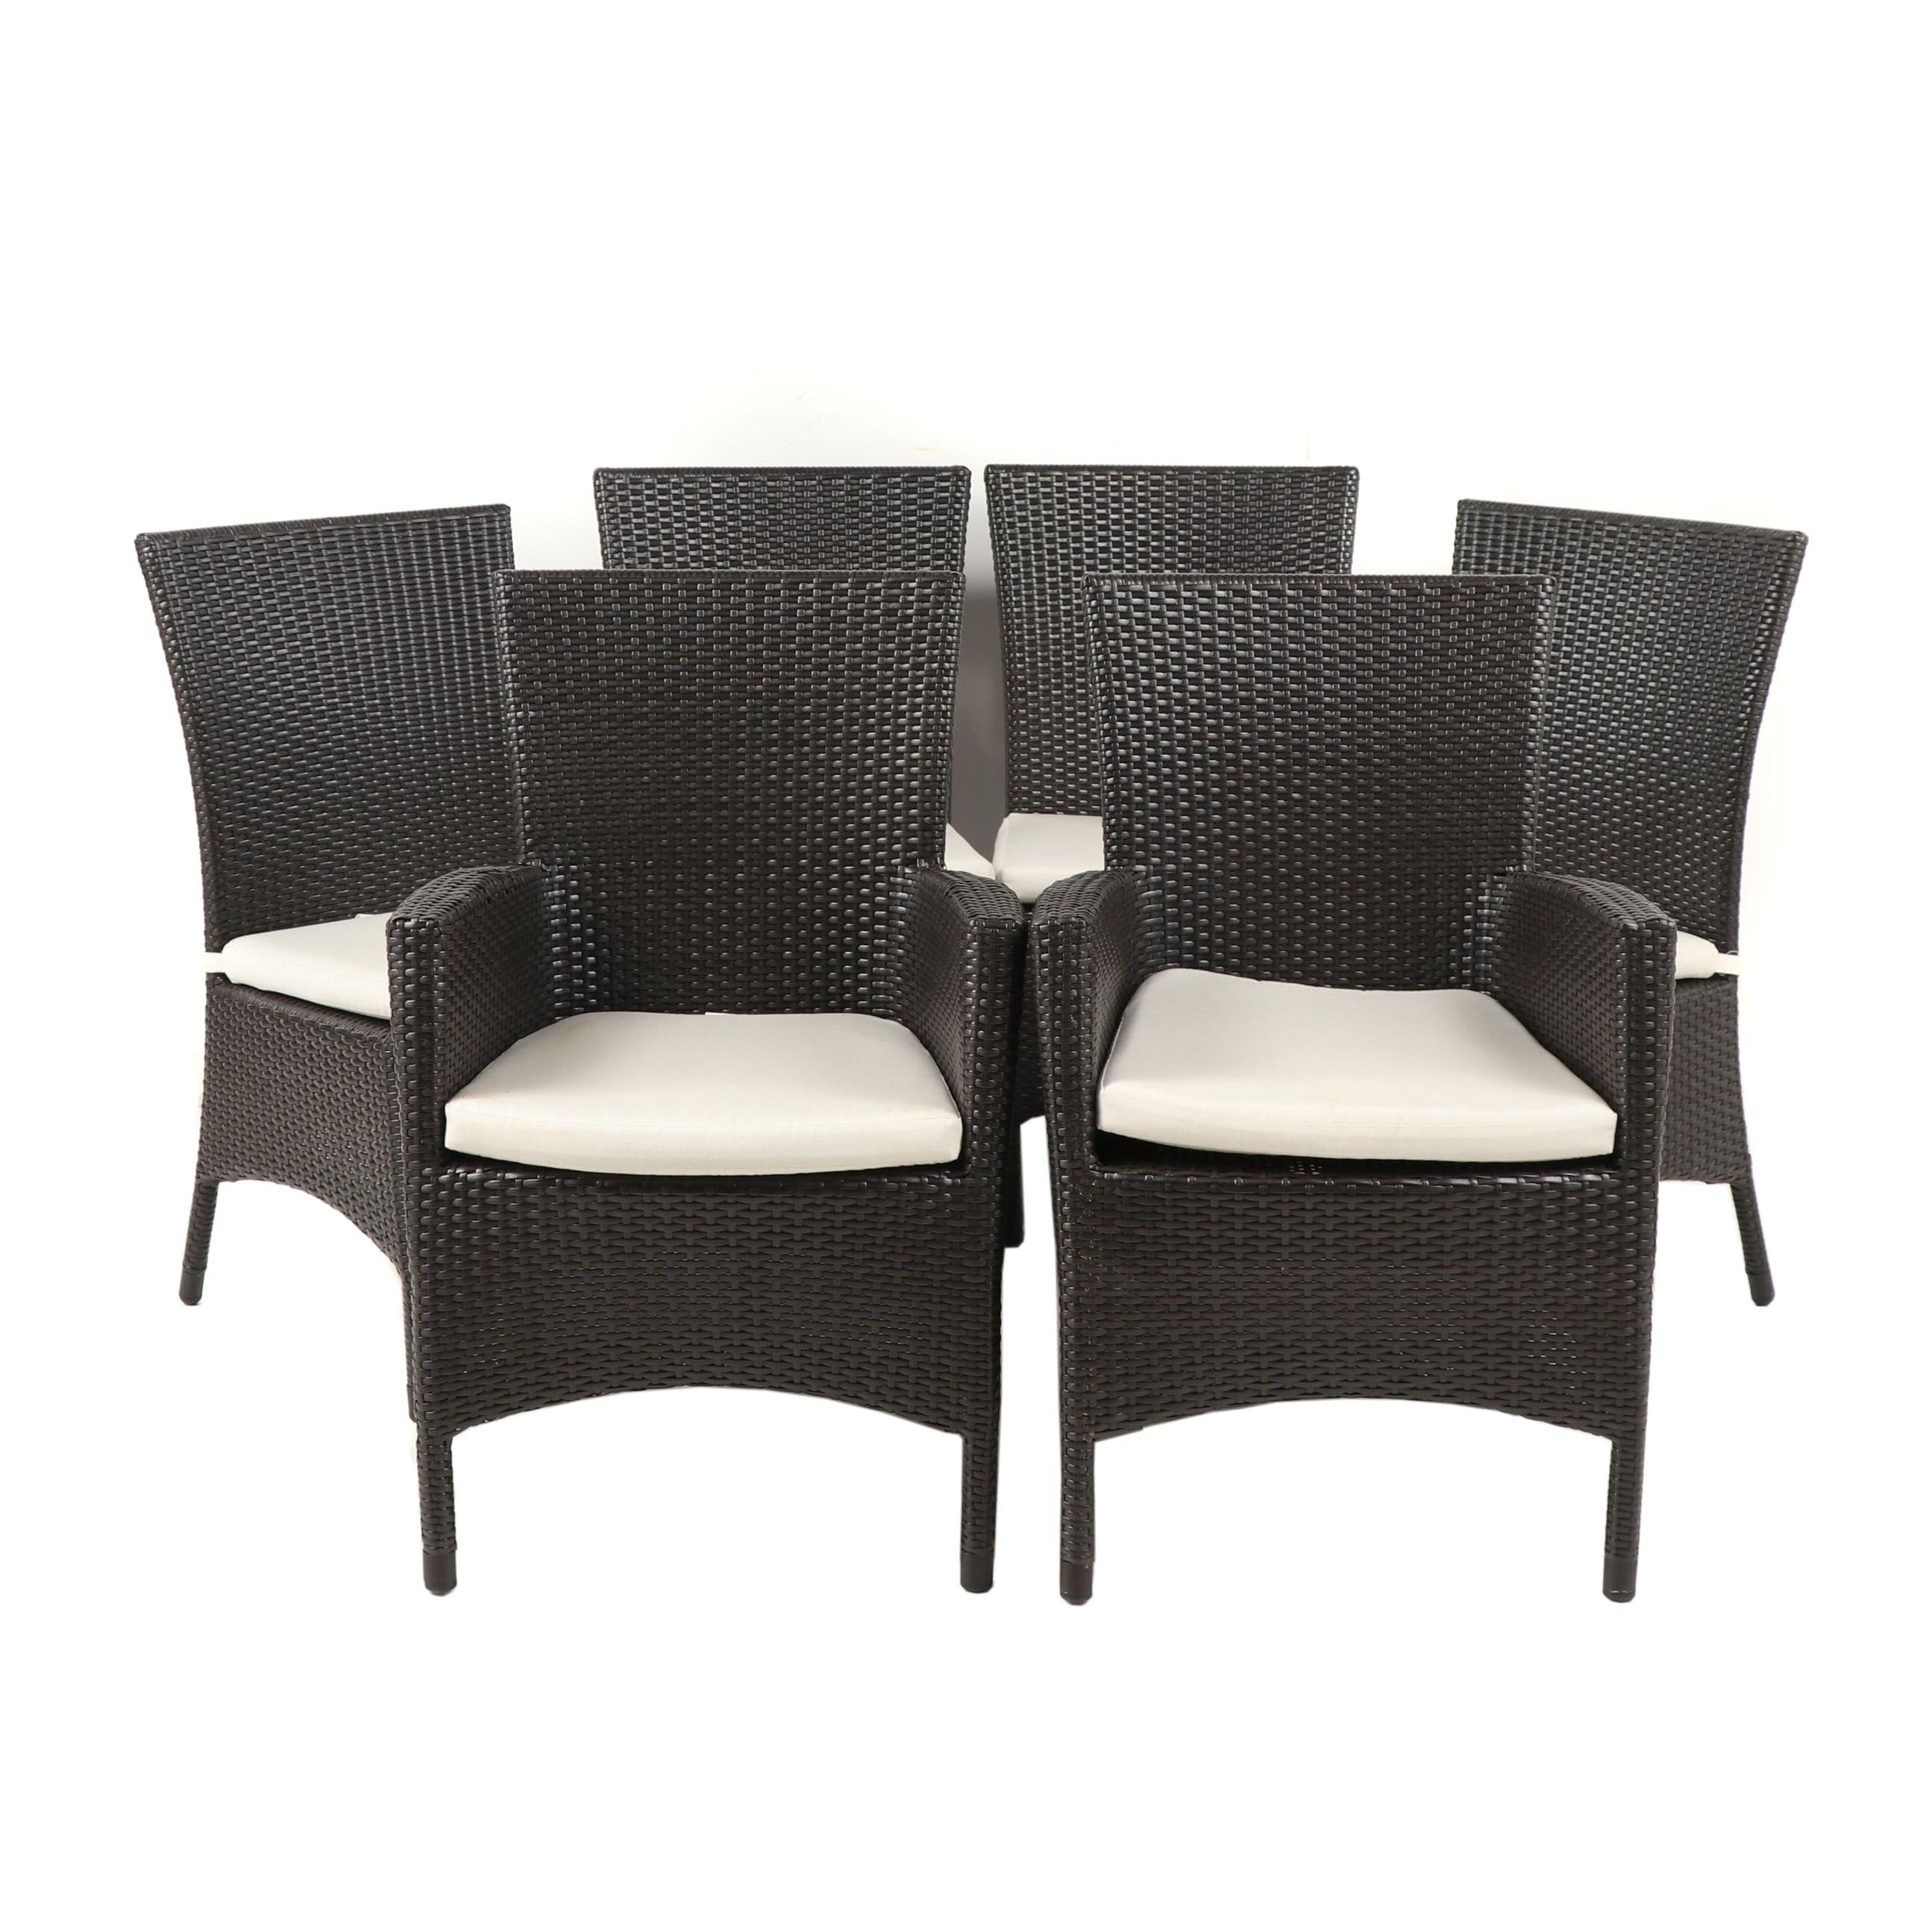 Contemporary Ratana Wicker Style Dining Chairs, Set of Six